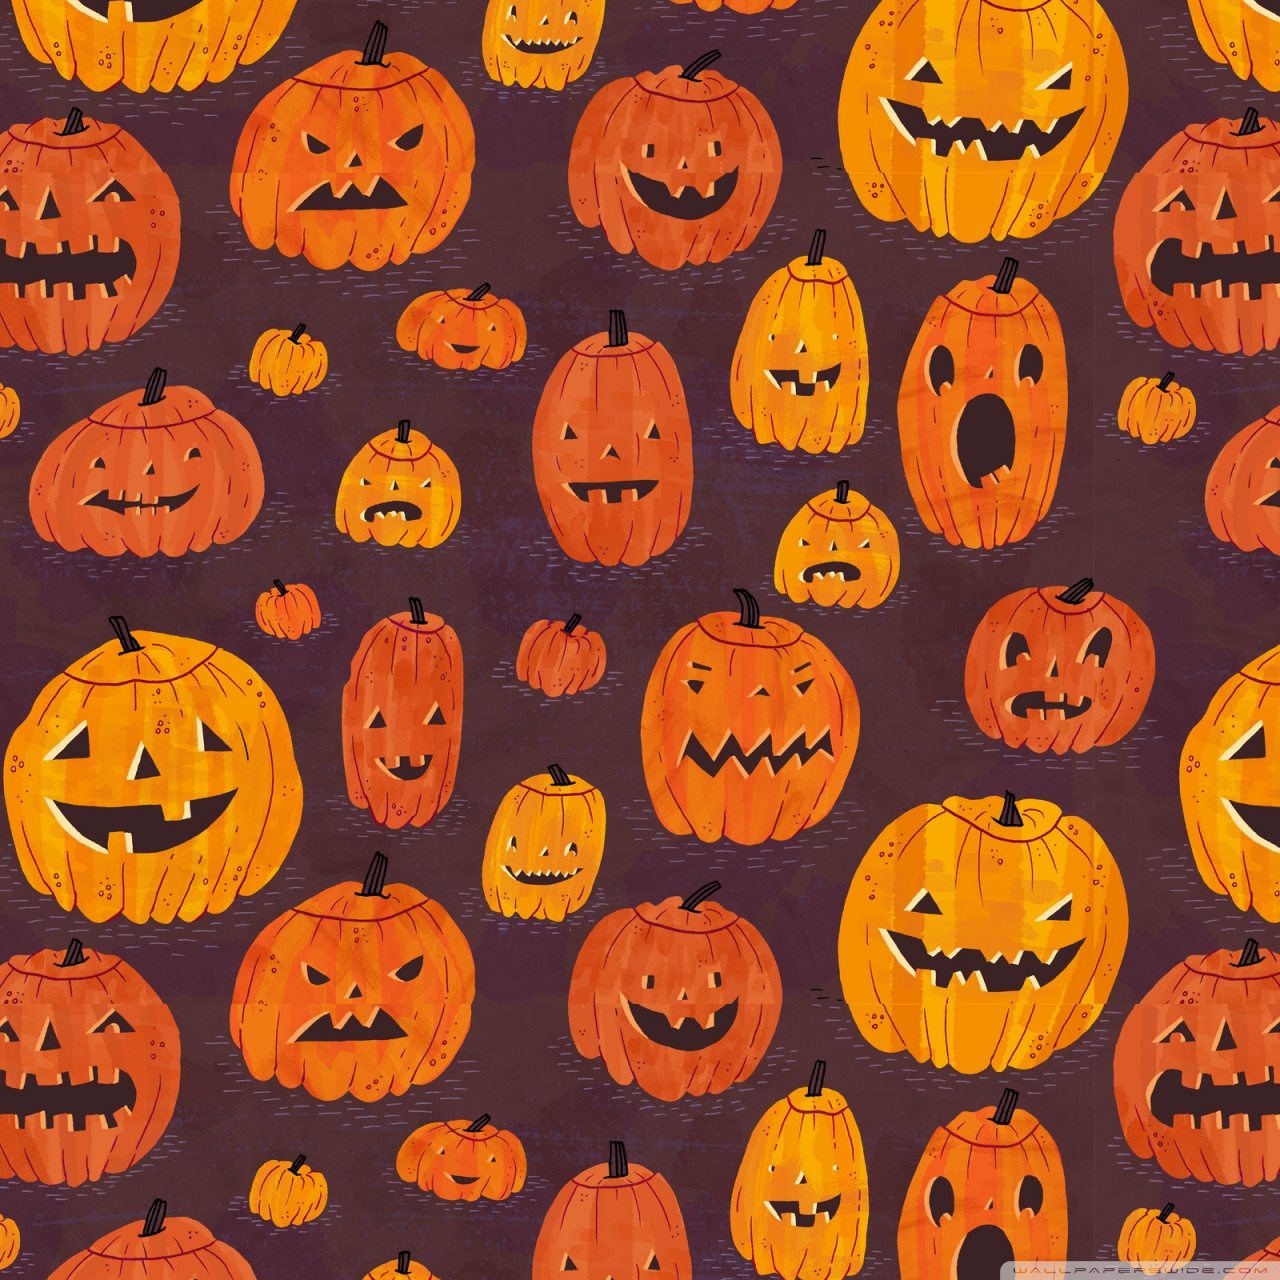 Halloween Wallpaper High Quality Resolution Is Cool Wallpapers